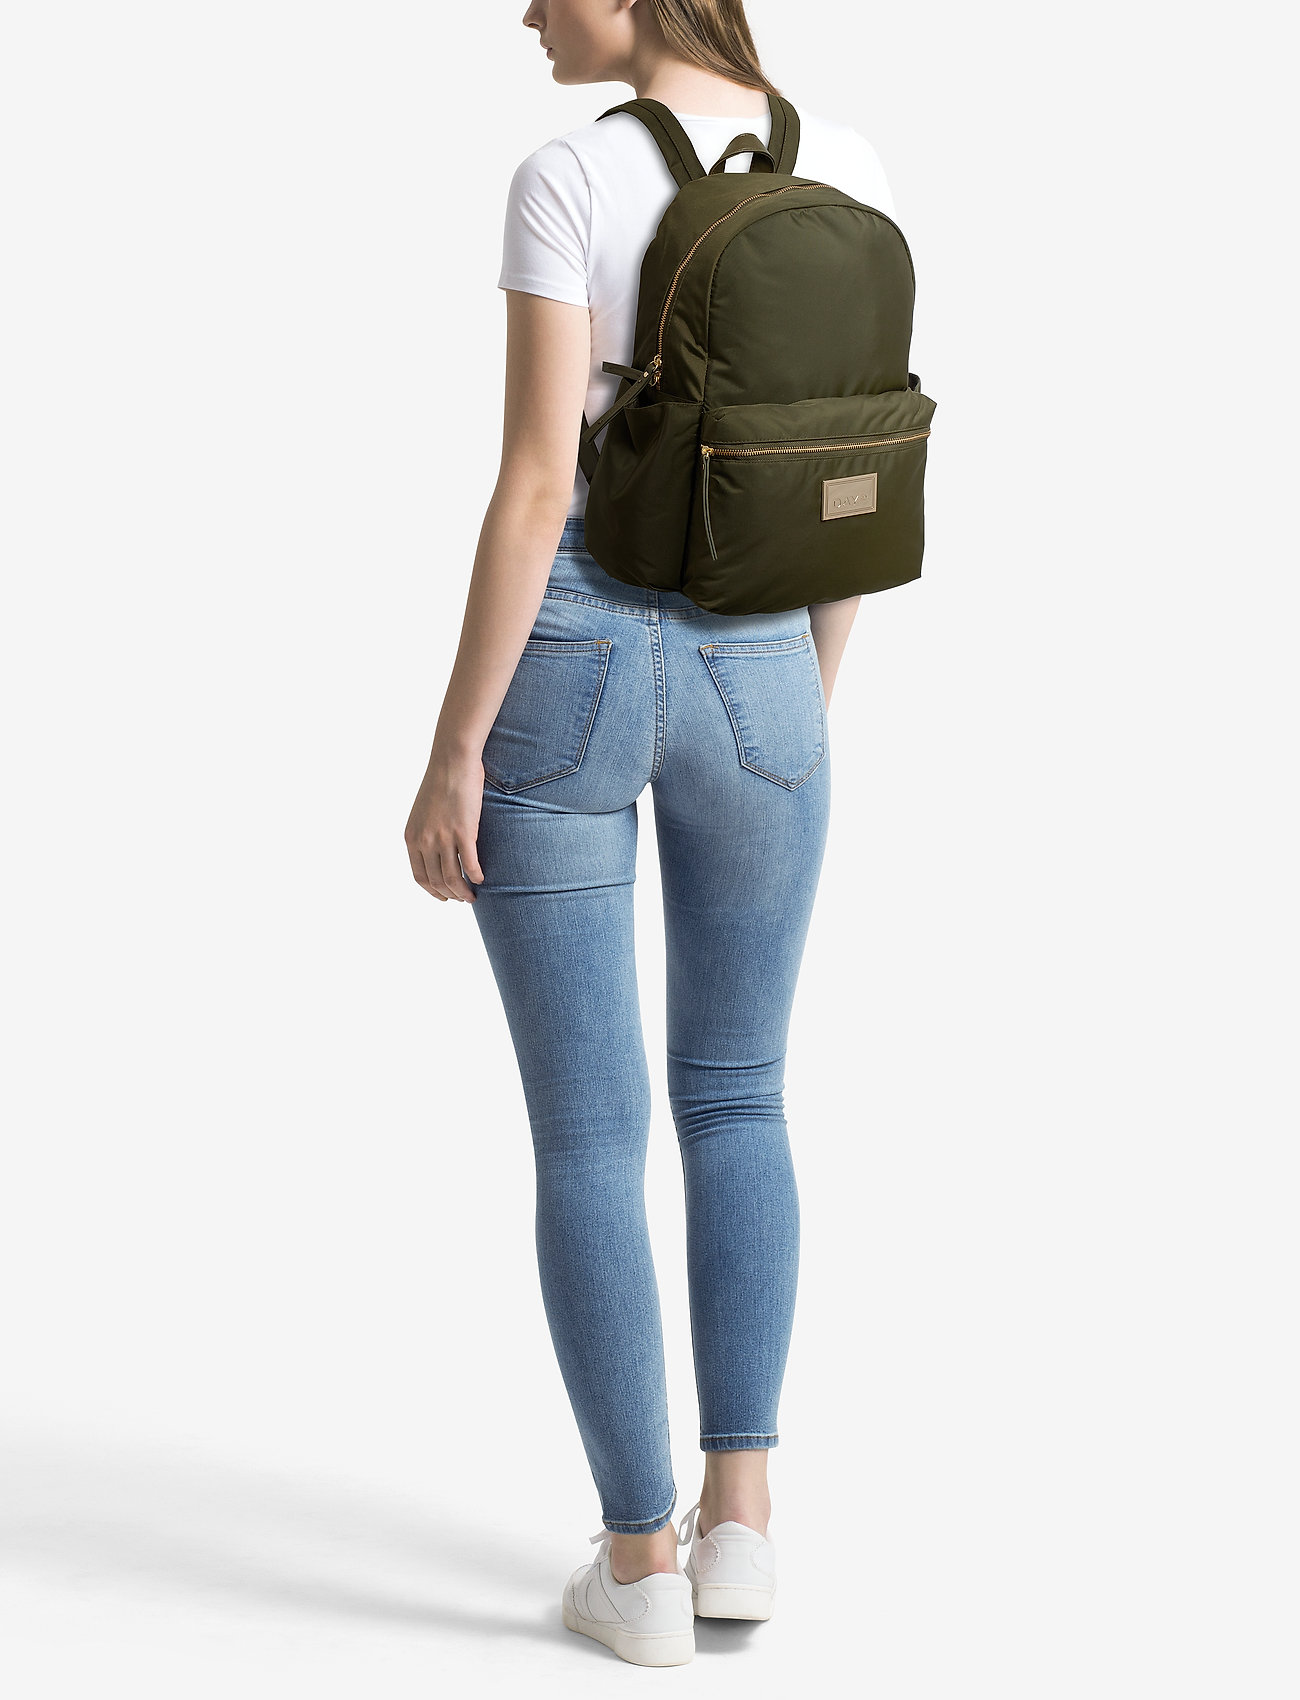 DAY et Day GW Luxe BP B - IVY GREEN